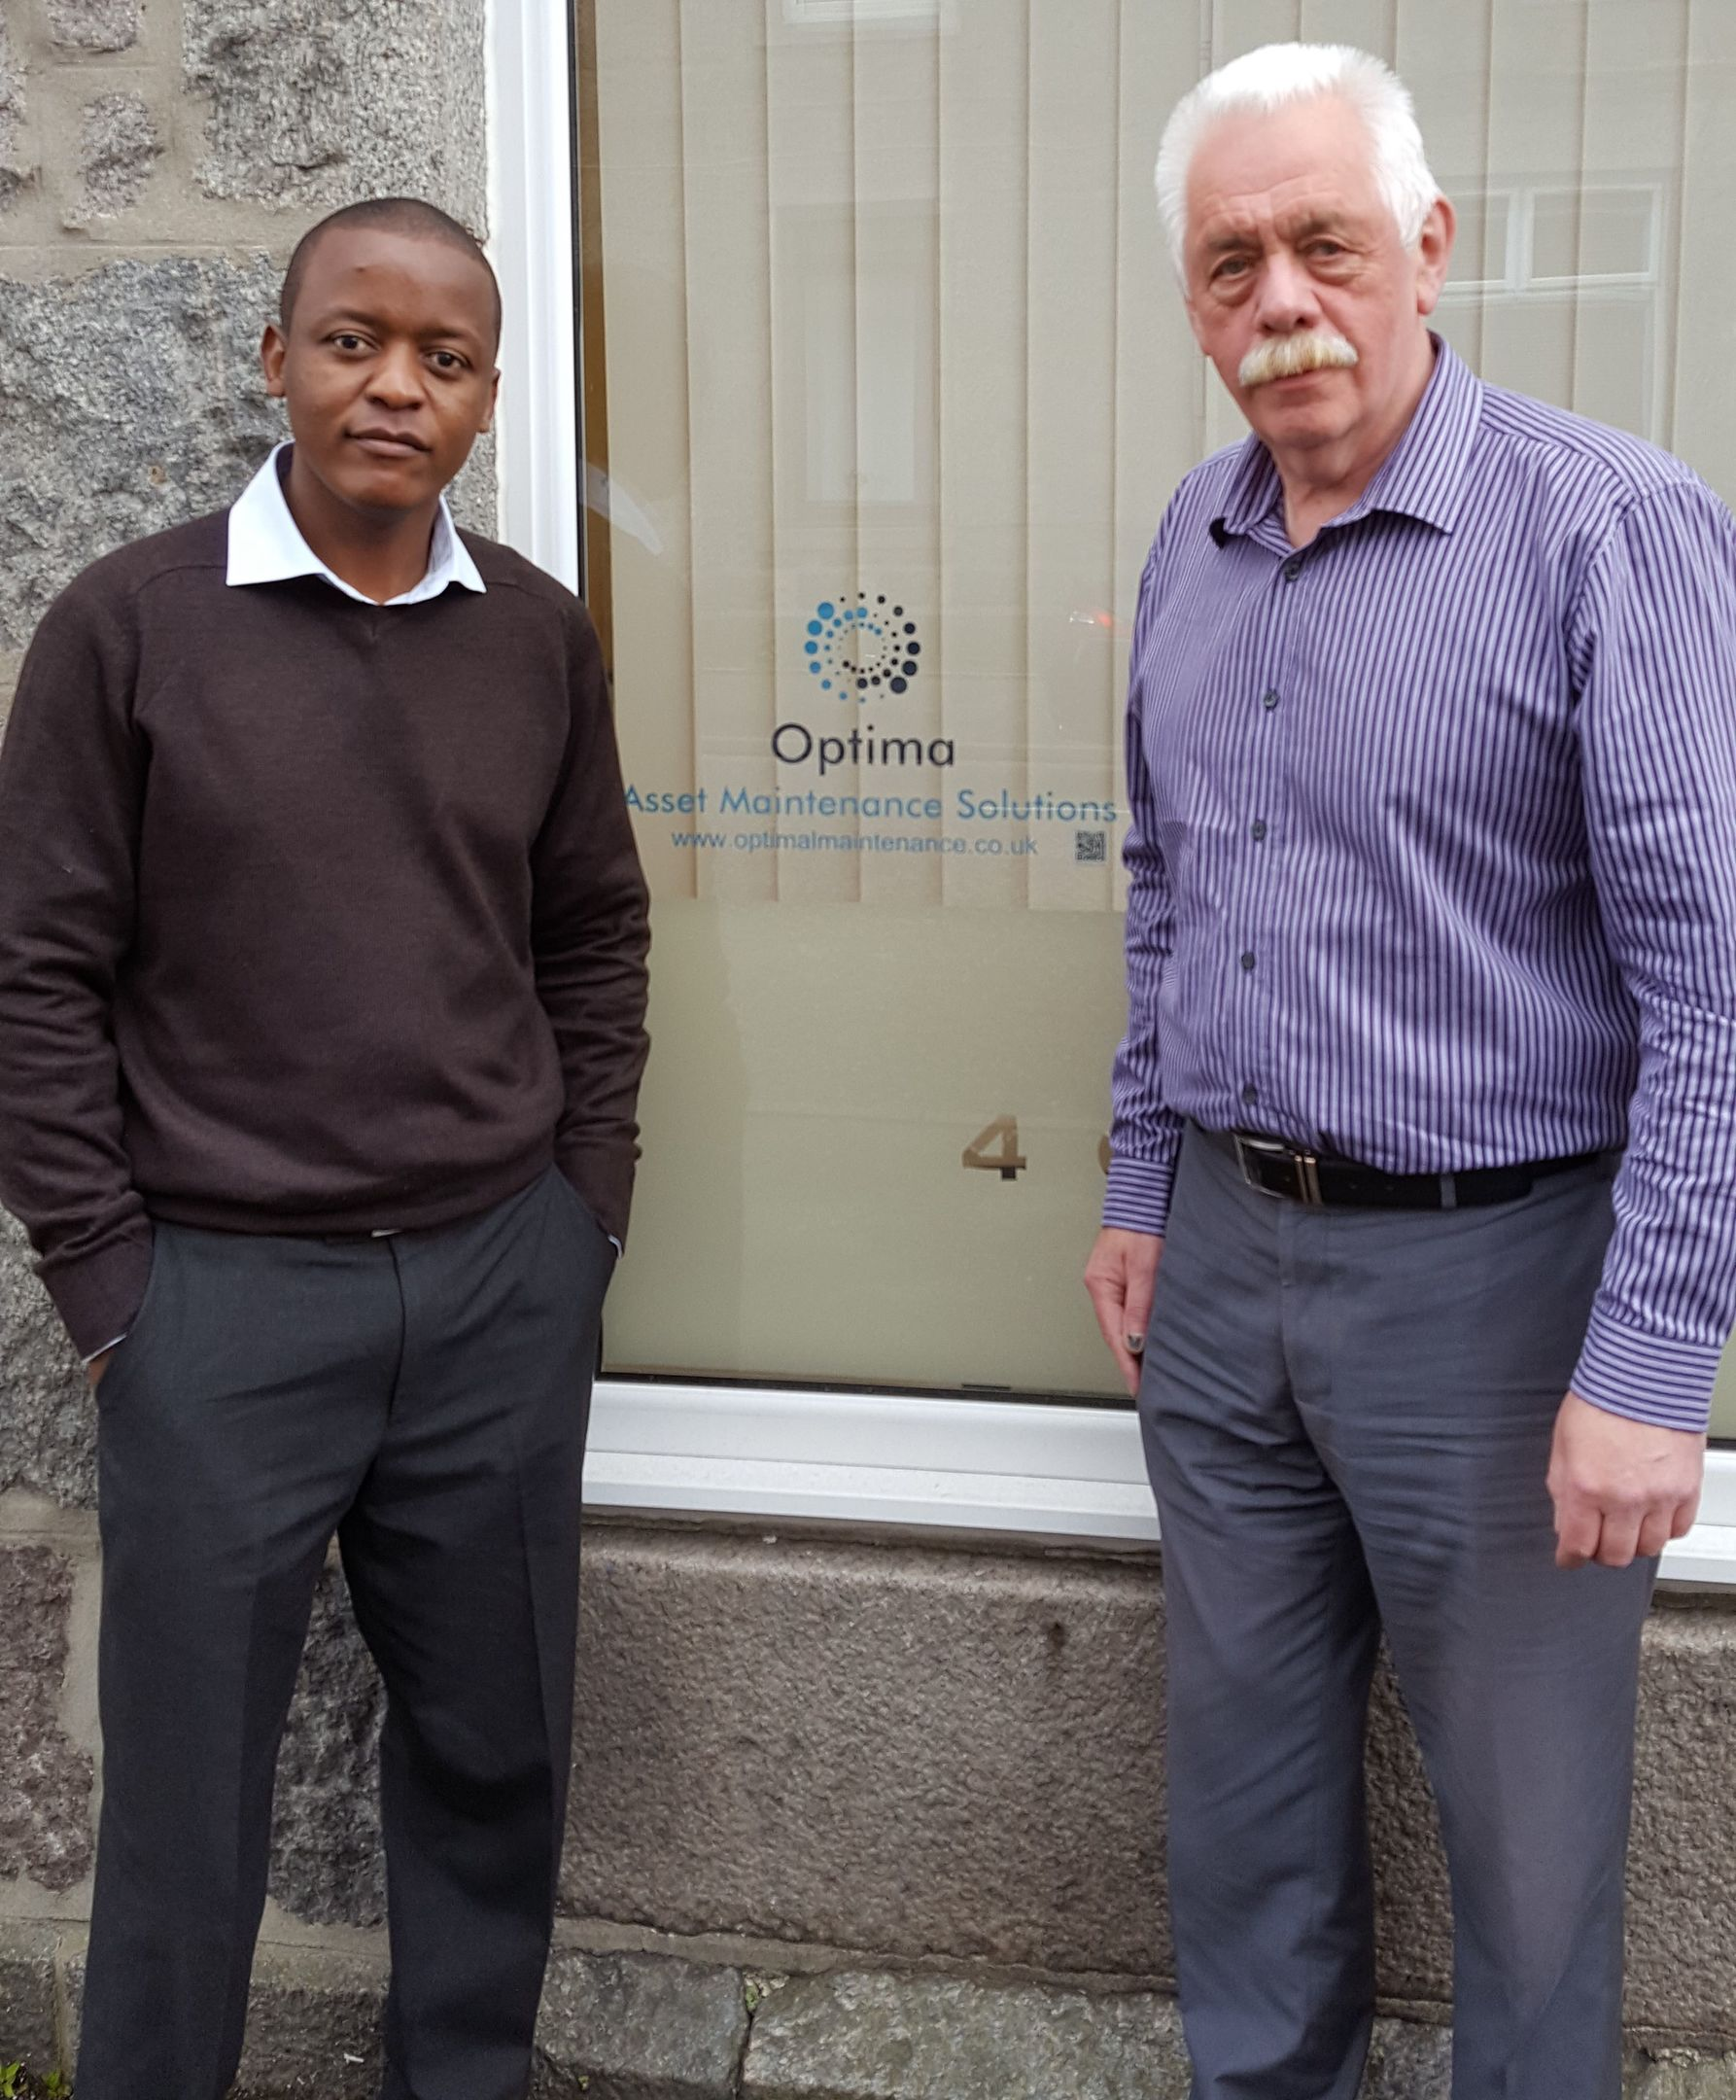 Leslie Moyo, Mike Holland of Optima Asset Maintenance Solutions